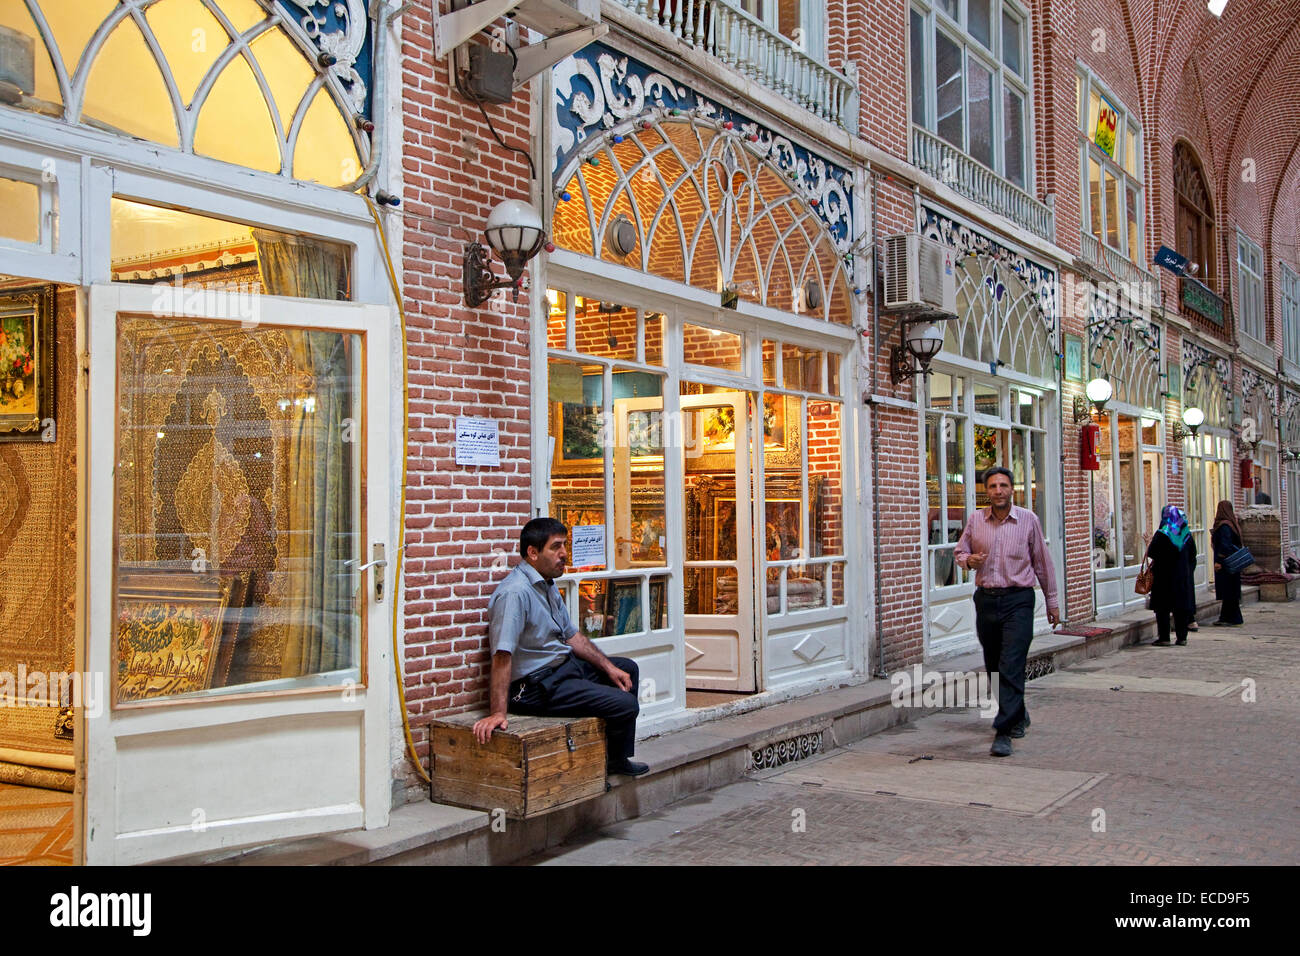 Antiques and carpets for sale in shops in the old historic bazaar of the city Tabriz, East Azerbaijan, Iran - Stock Image